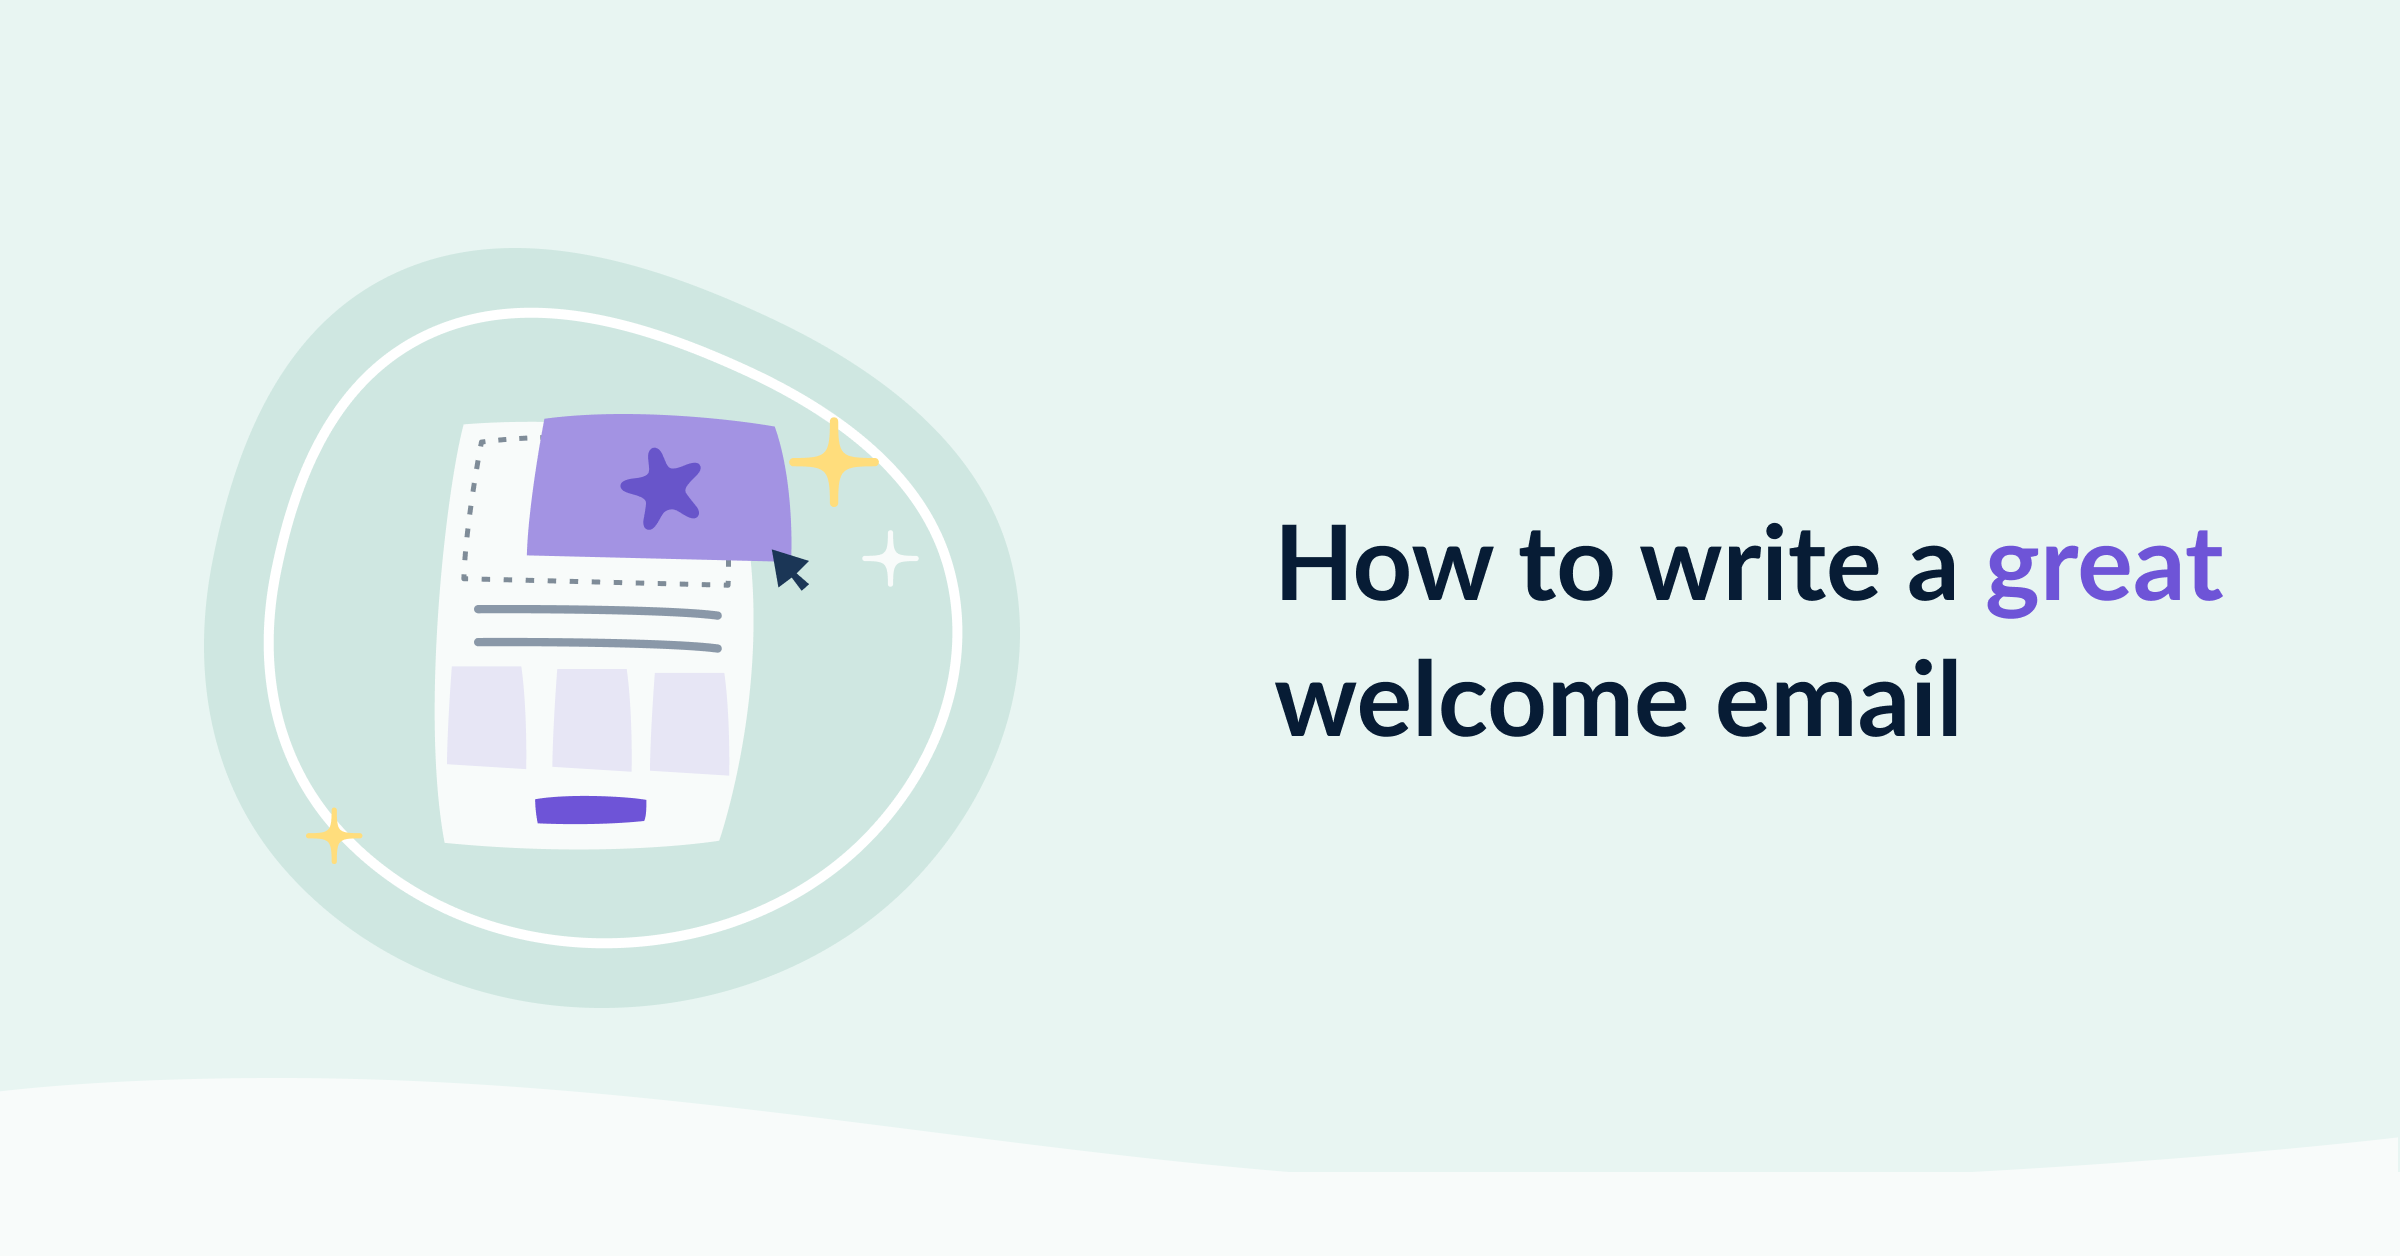 How to write a great welcome email cover image